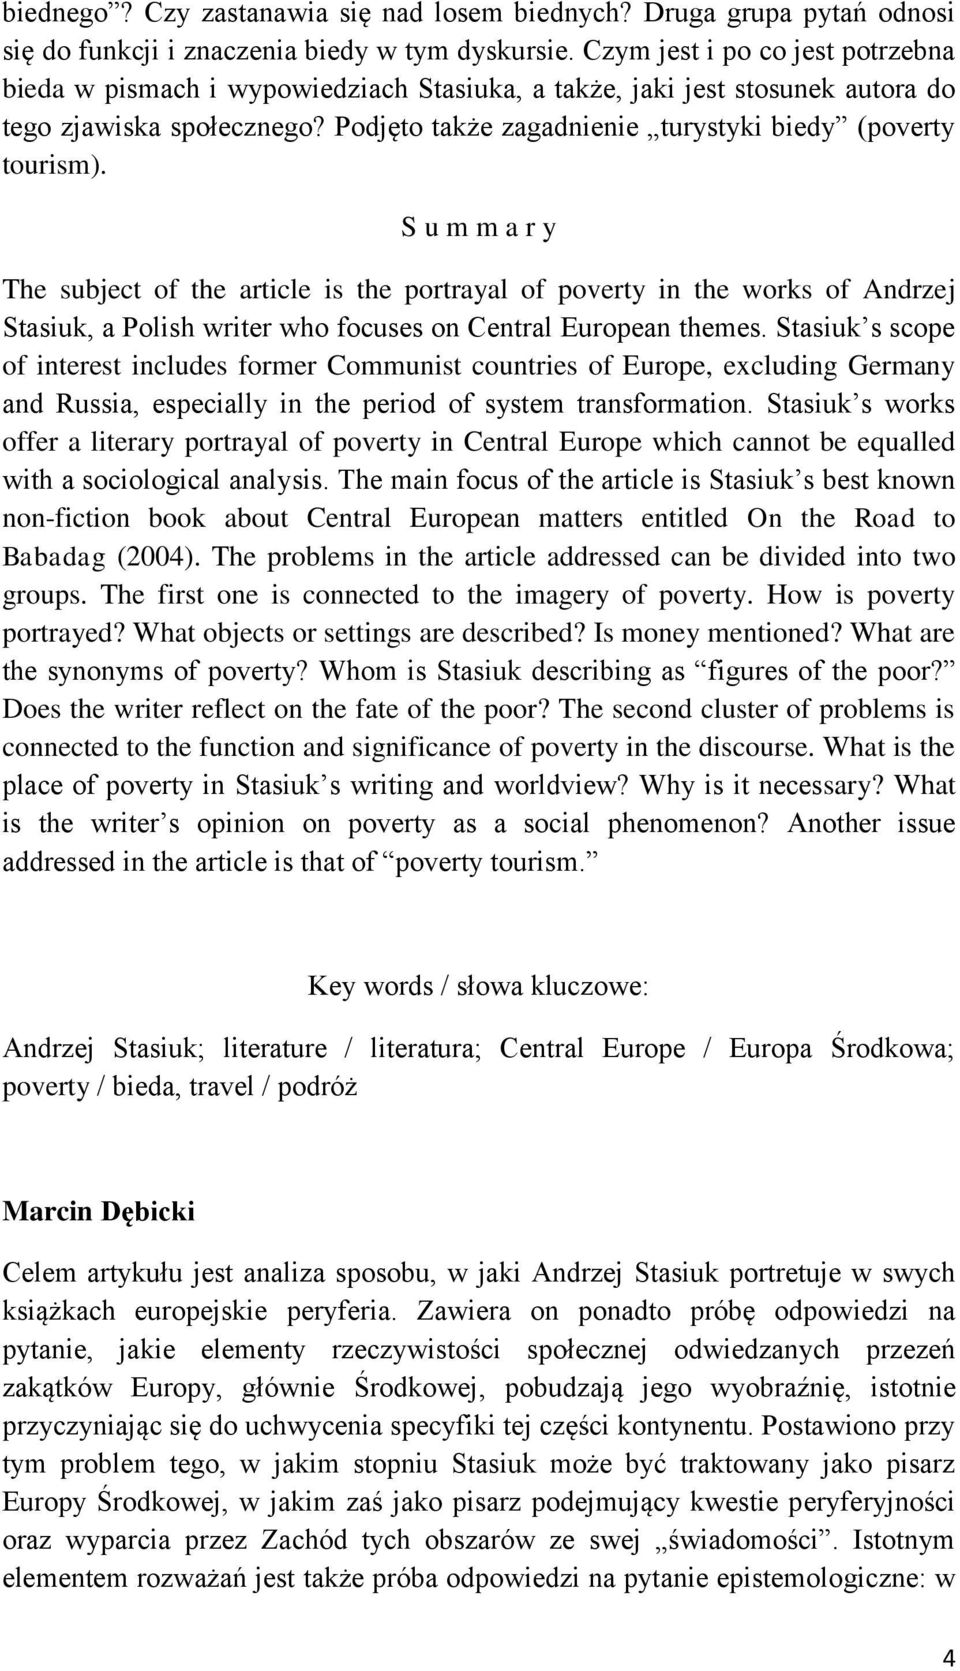 The subject of the article is the portrayal of poverty in the works of Andrzej Stasiuk, a Polish writer who focuses on Central European themes.